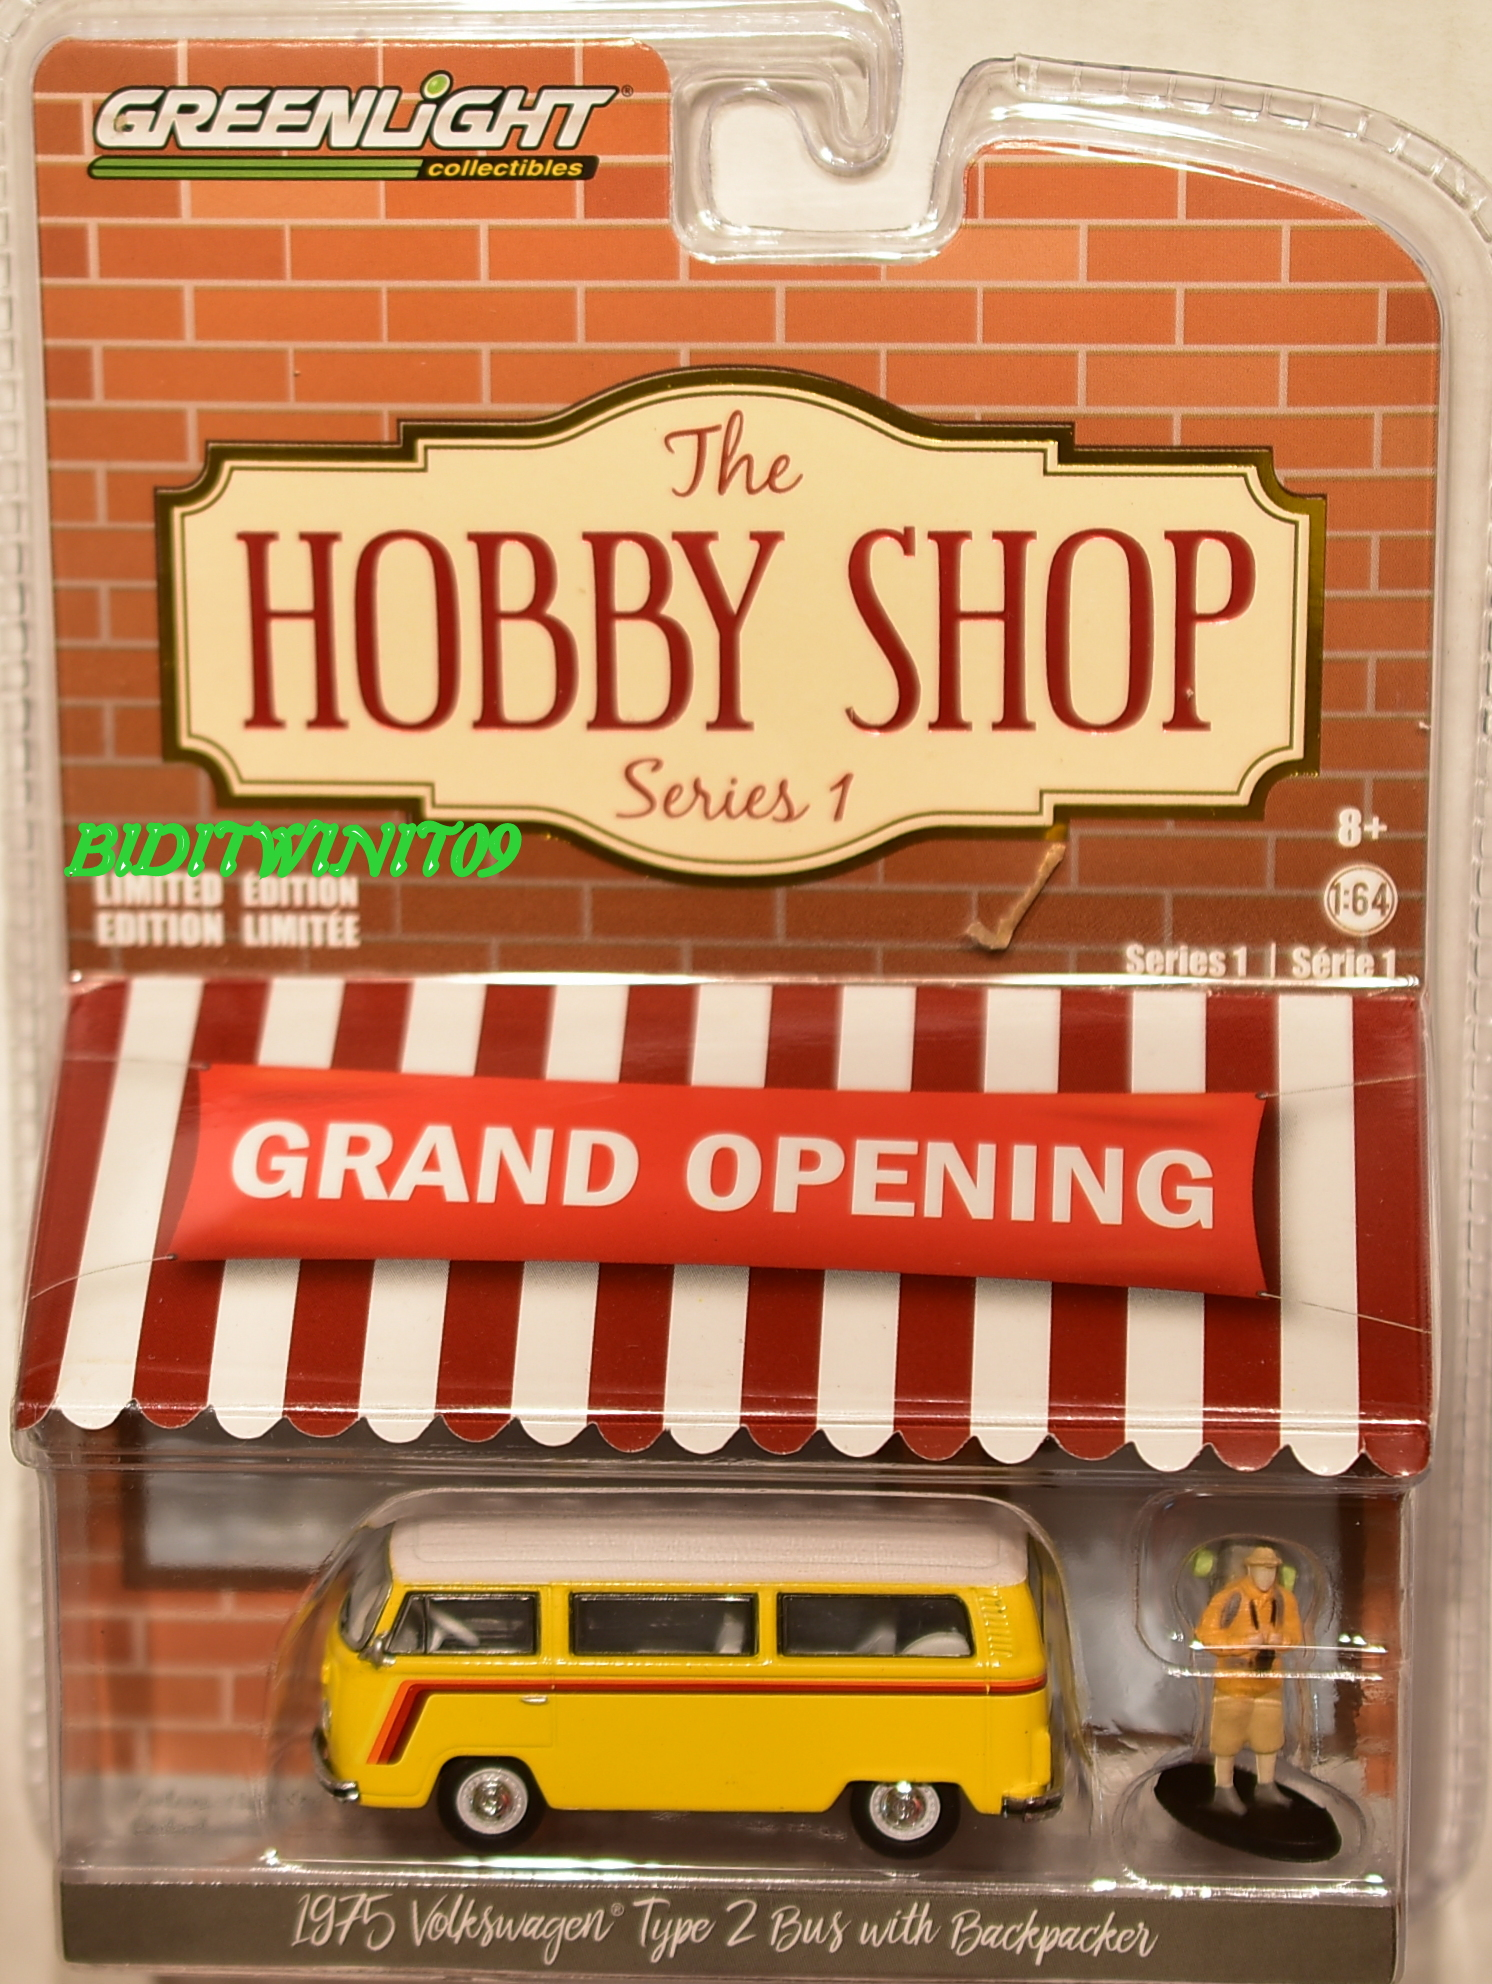 GREENLIGHT THE HOBBY SHOP SERIES 1 1975 VOLKSWAGEN TYPE 2 BUS WITH BACKPACKER E+